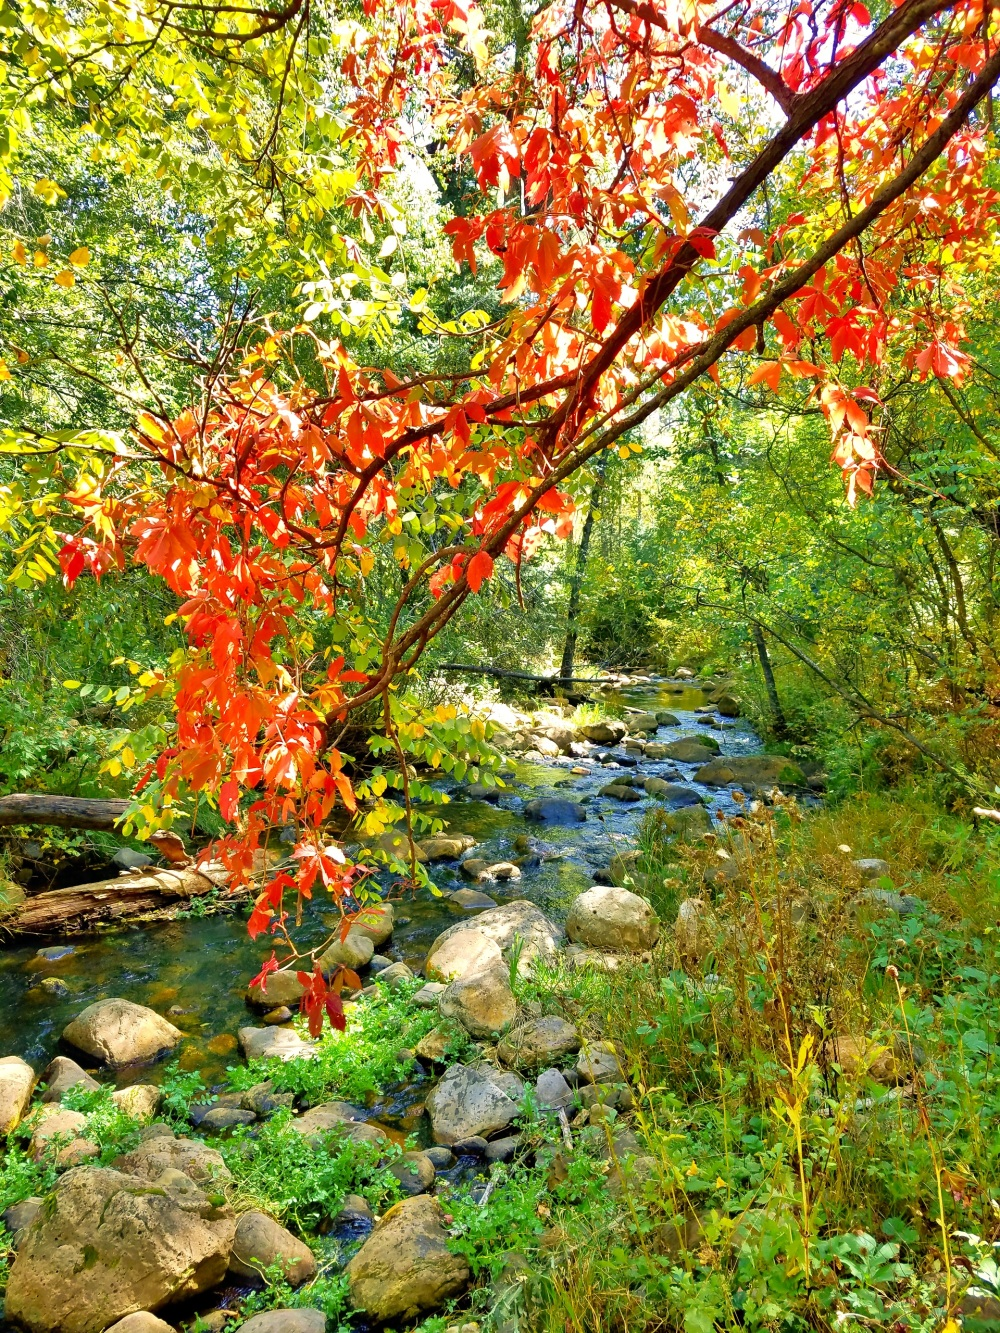 Bright orange leaves hang over the creek